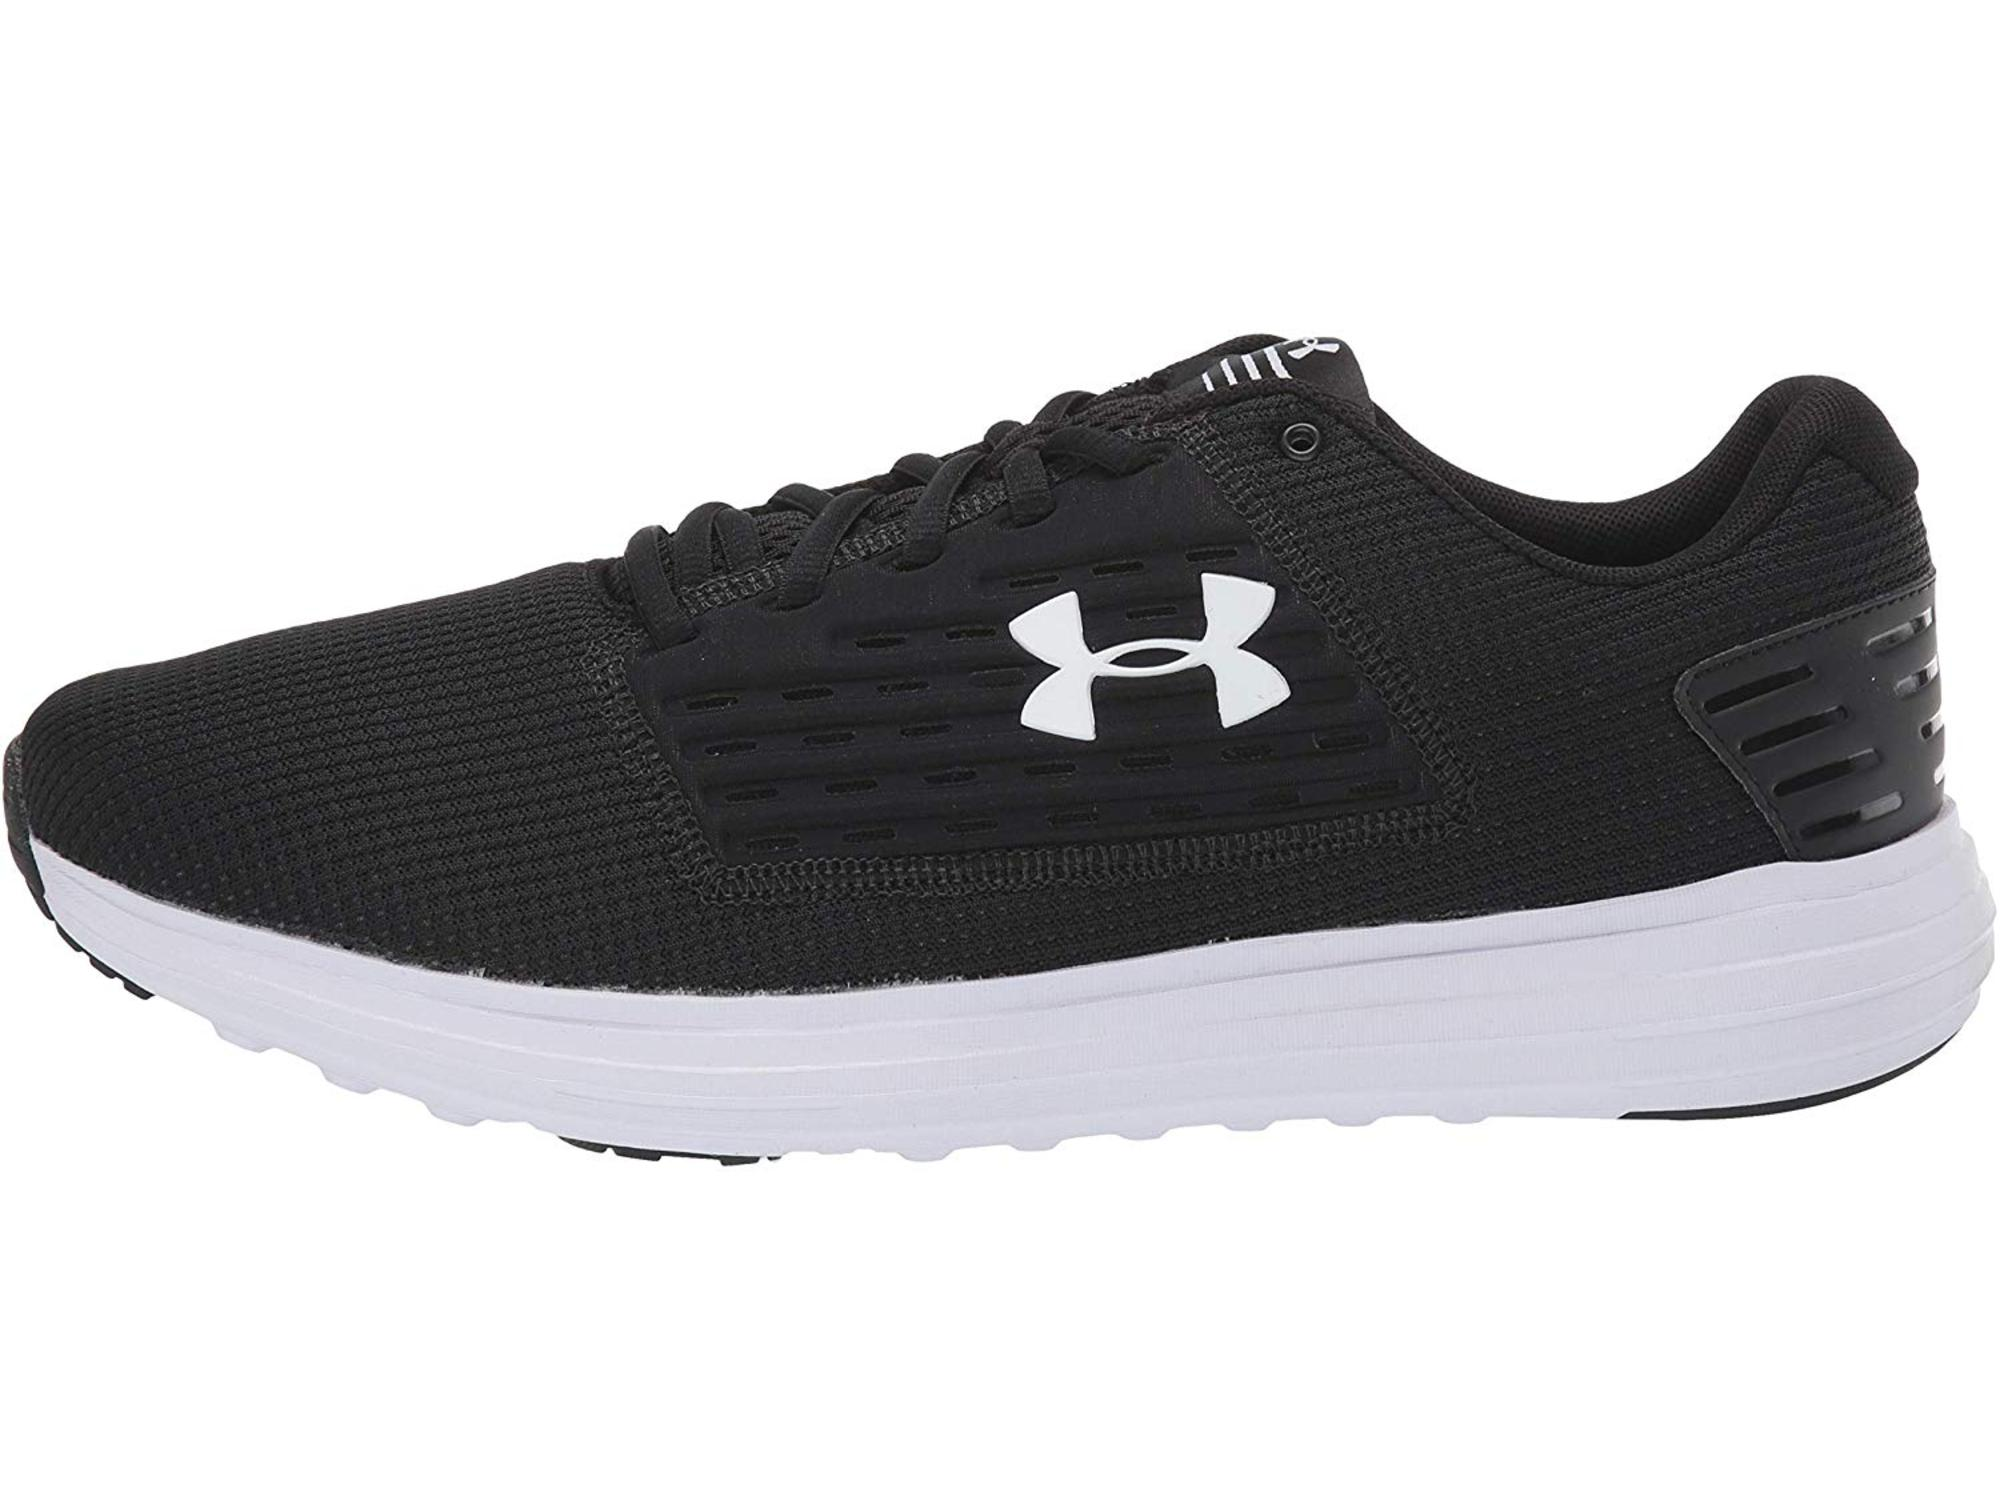 Mens Everlast Extra Wide Running Shoes Sneakers Casual Athletic Tennis Shoe 4E